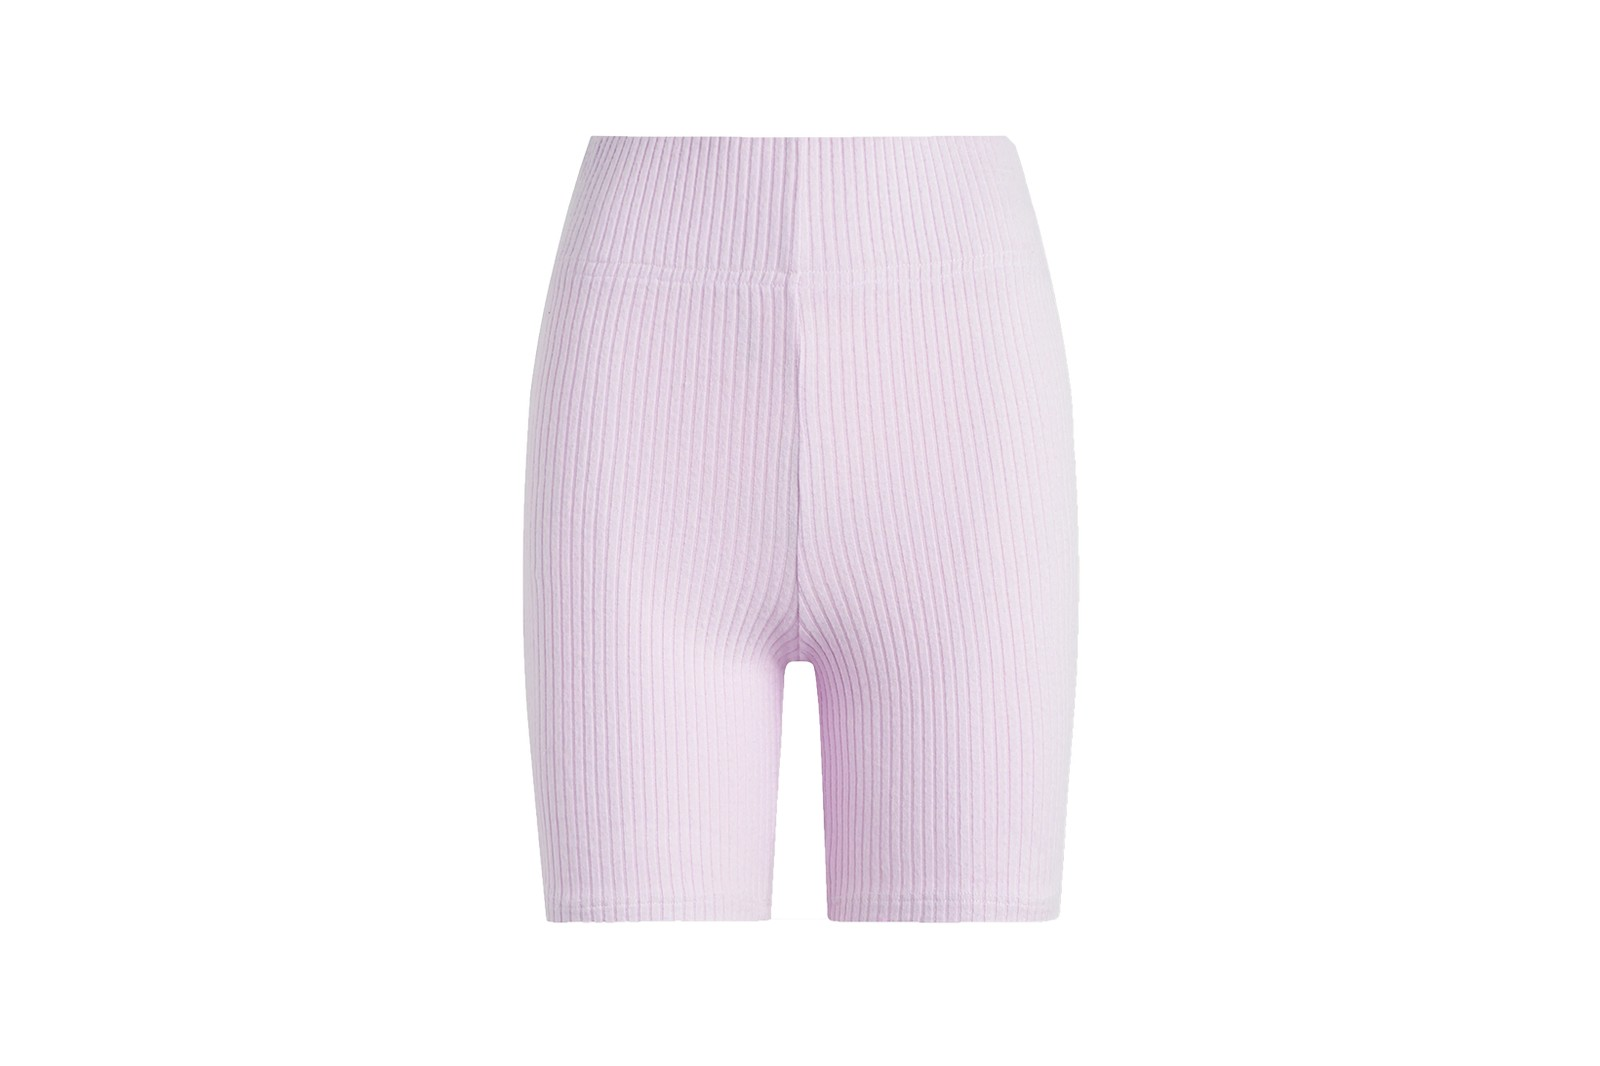 best bike cycling shorts affordable high end nike fendi girlfriend collective pastel blue green white silver activewear sportswear